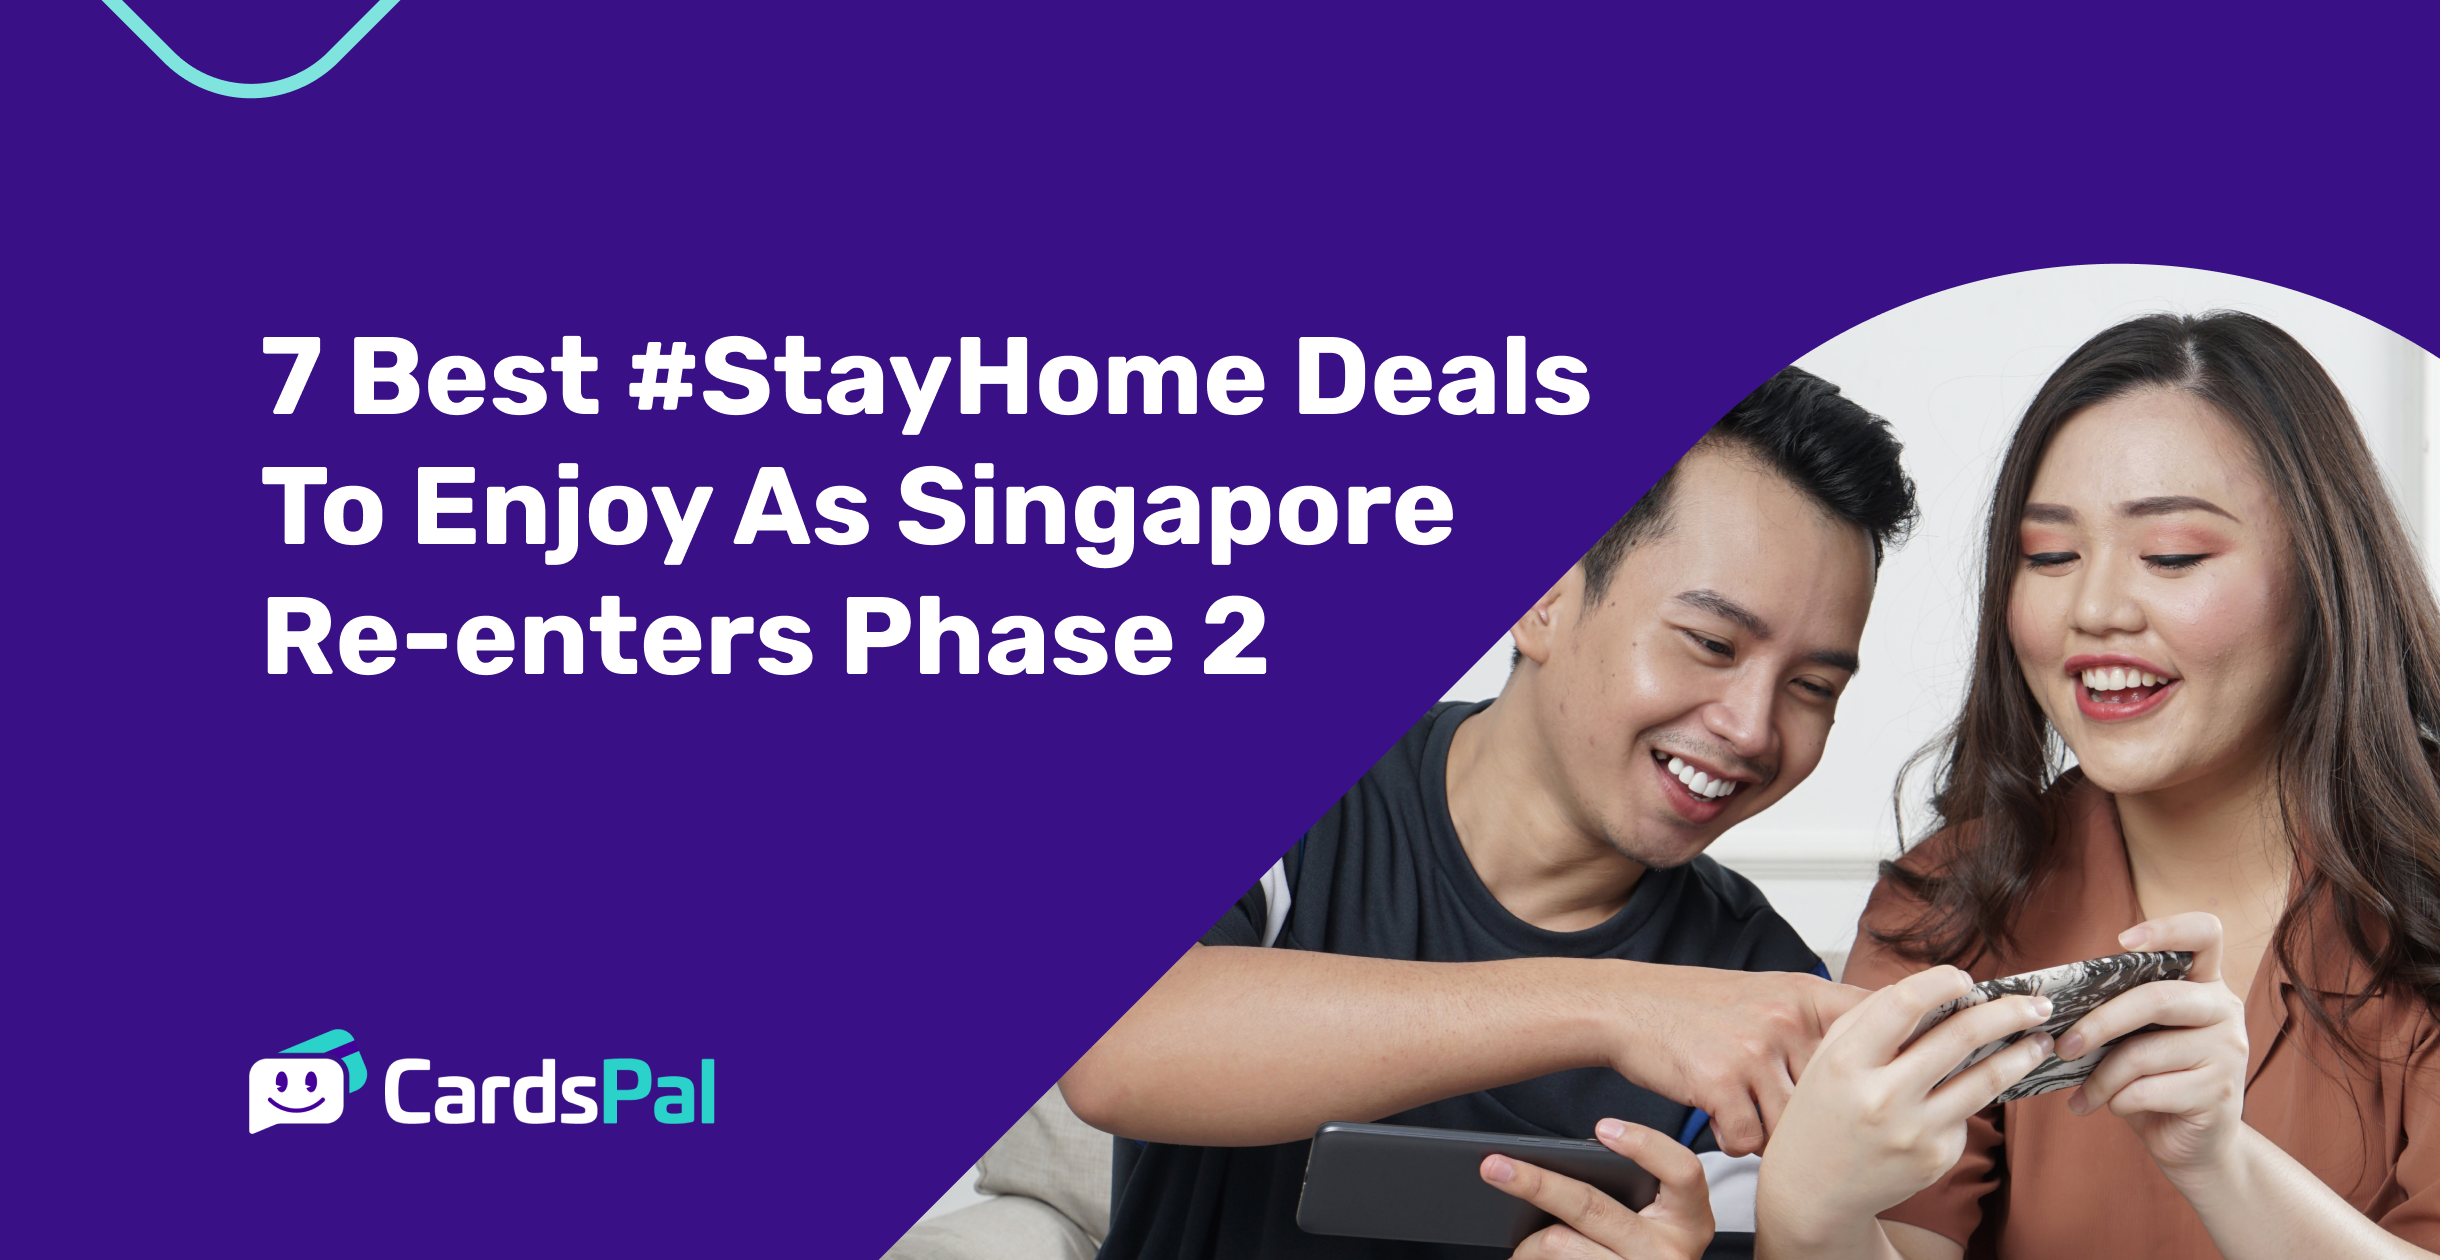 7 Best #StayHome Deals To Enjoy As Singapore Re-enters Phase 2